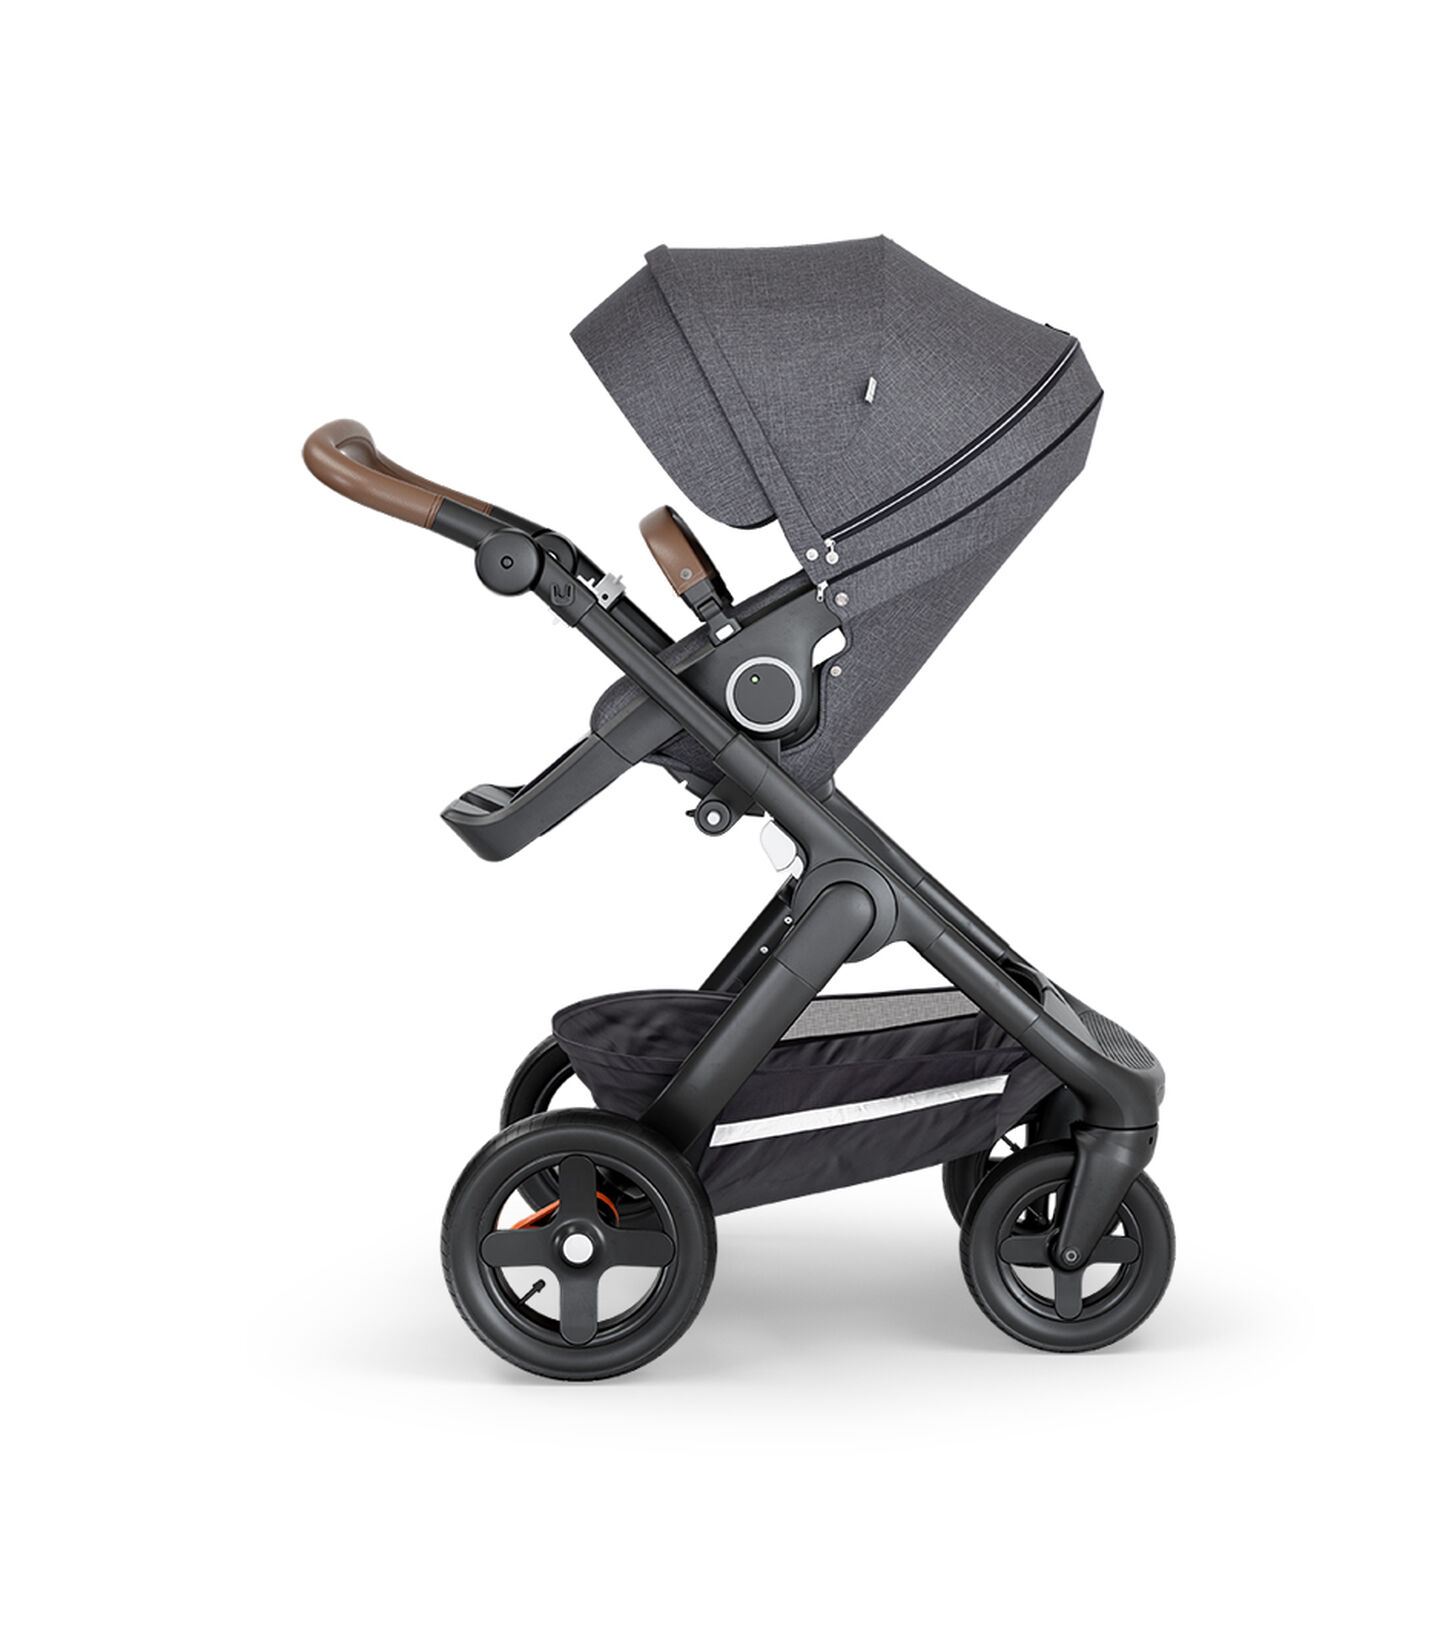 Stokke® Trailz™ with Black Chassis, Brown Leatherette and Terrain Wheels. Stokke® Stroller Seat, Black Melange. view 2